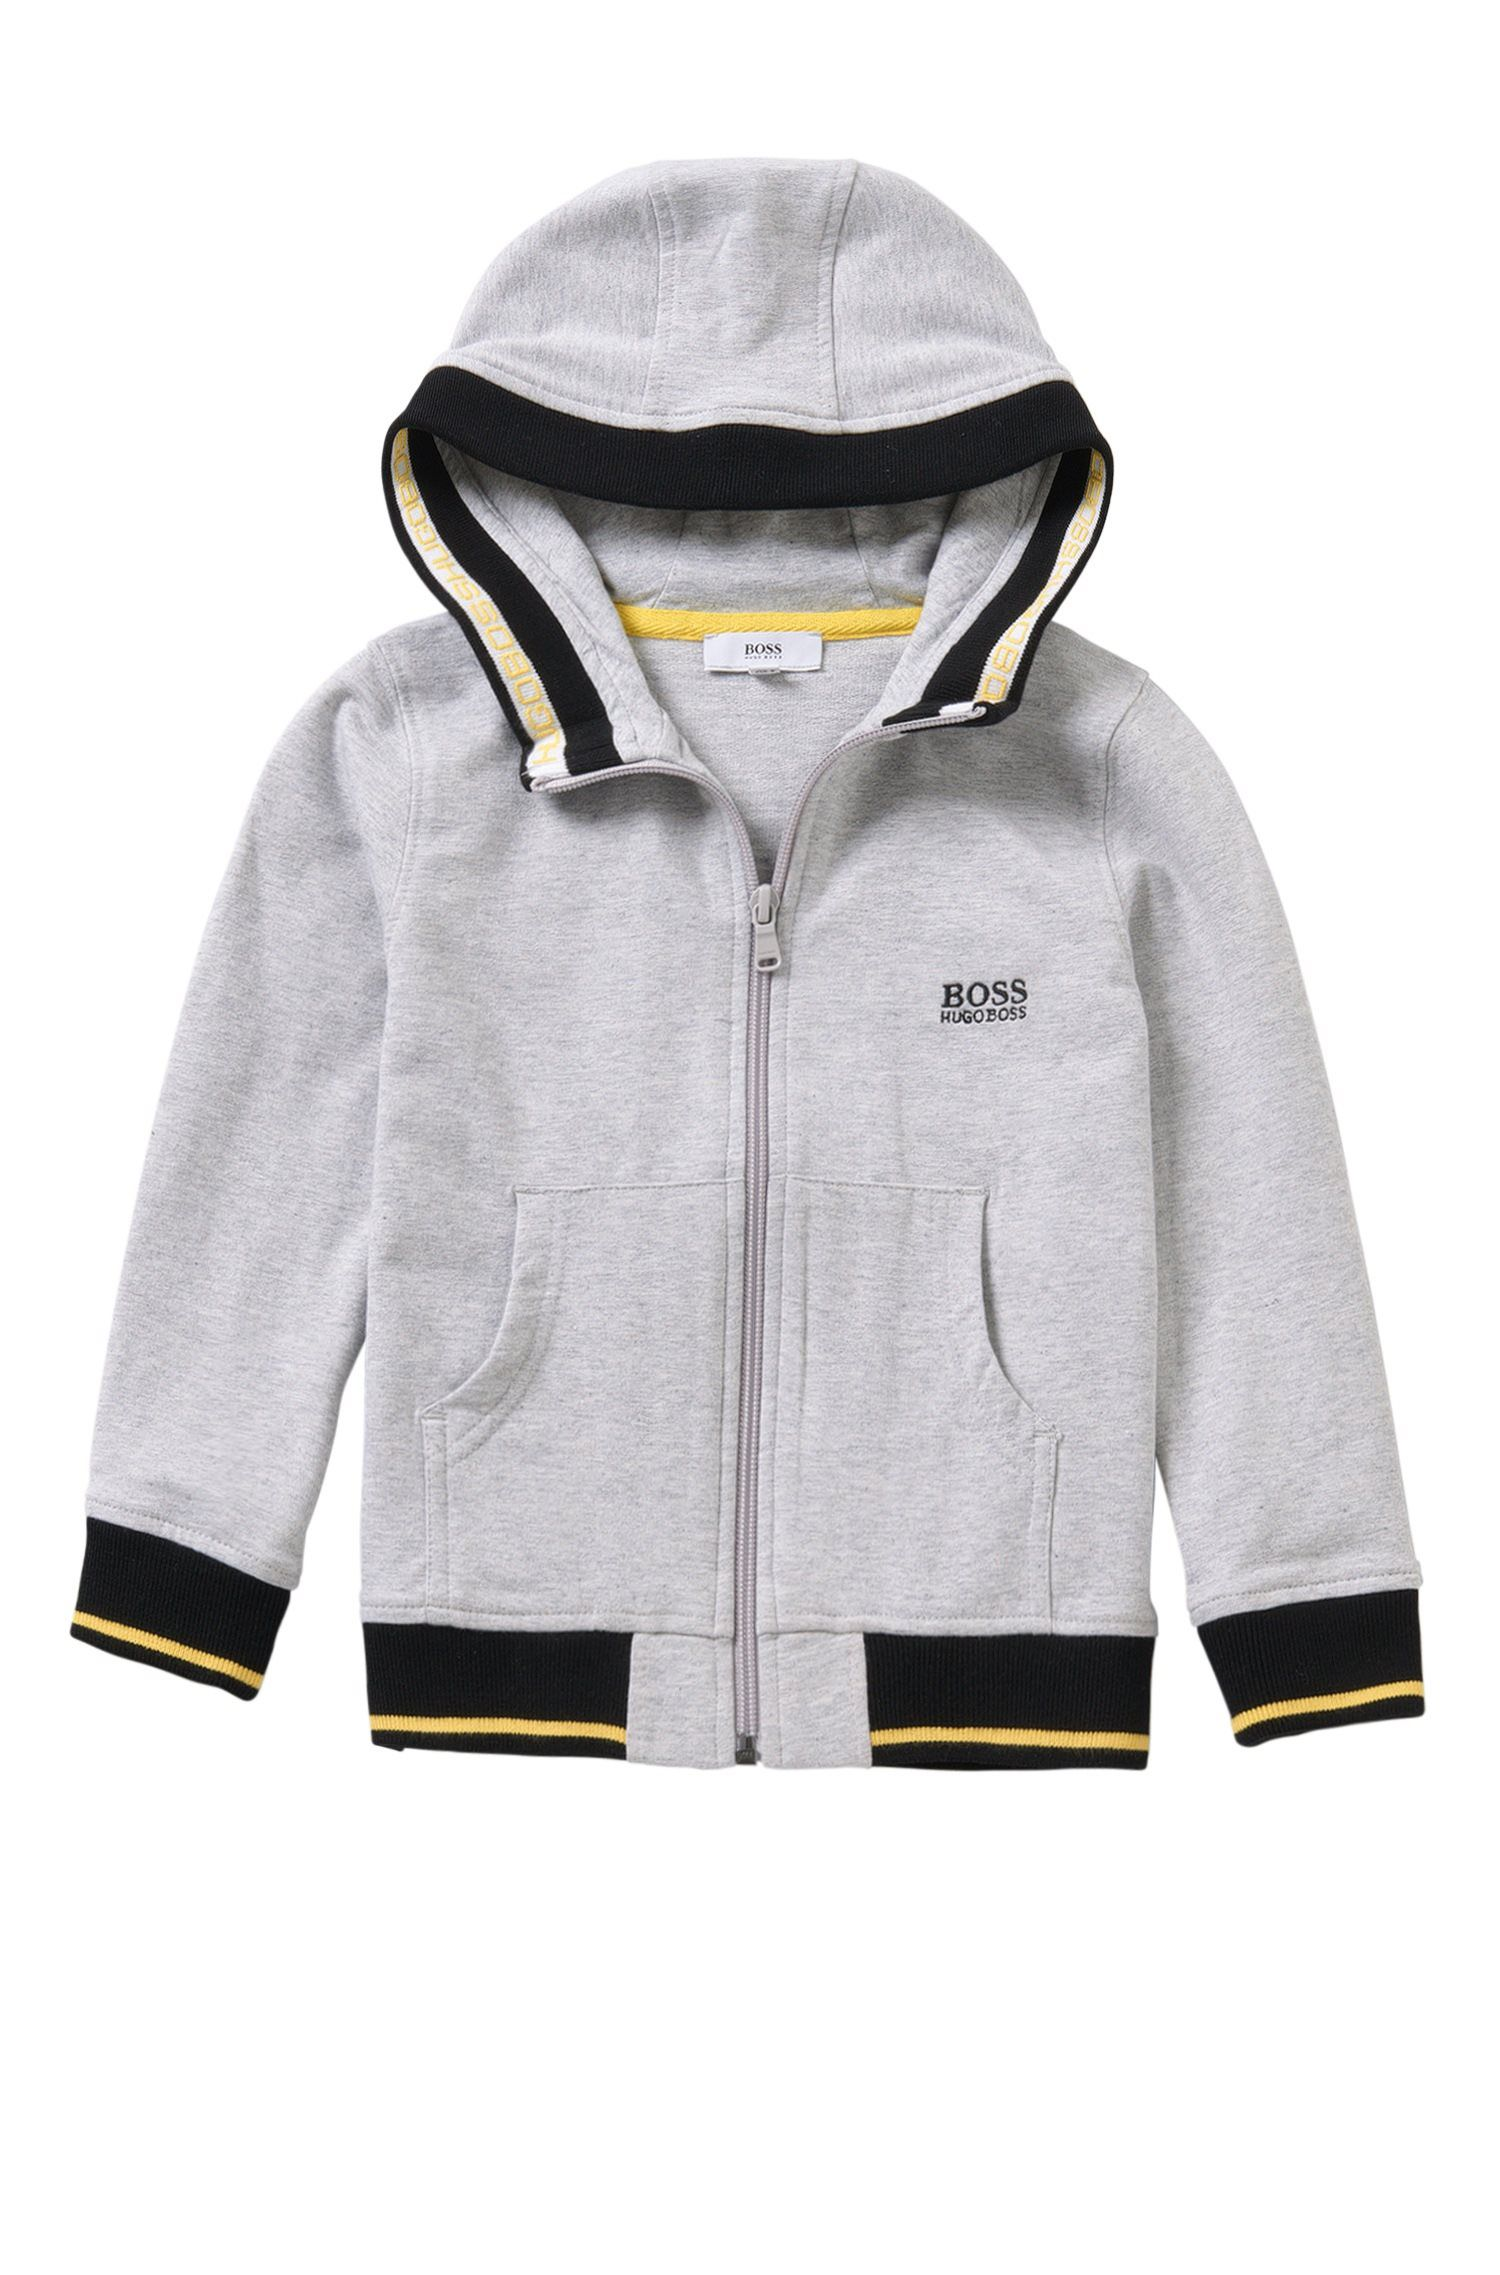 Kids' hooded sweatshirt jacket in stretch cotton: 'J25962'